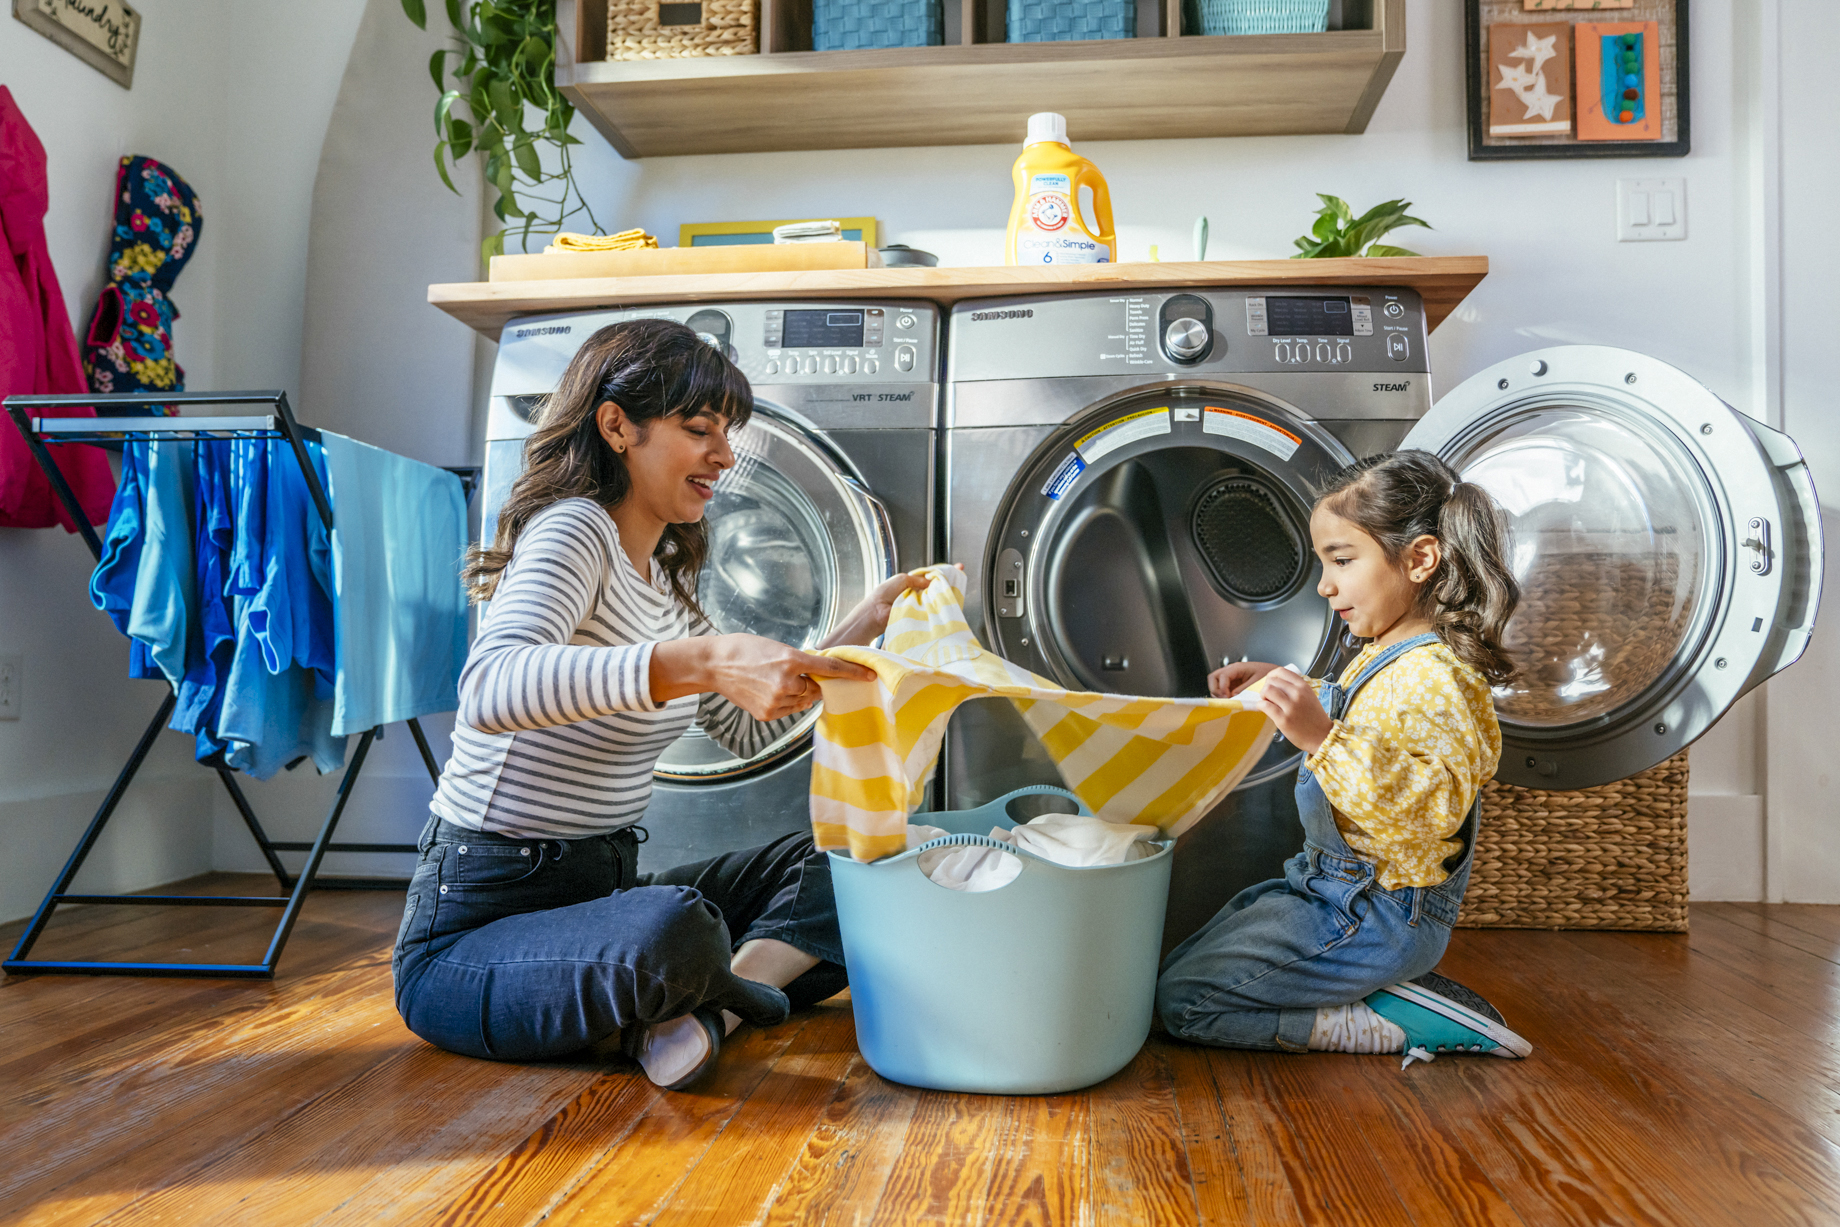 Mom and daughter folding laundry together on floor by dryer shot by Inti St. Clair for Arm and Hammer